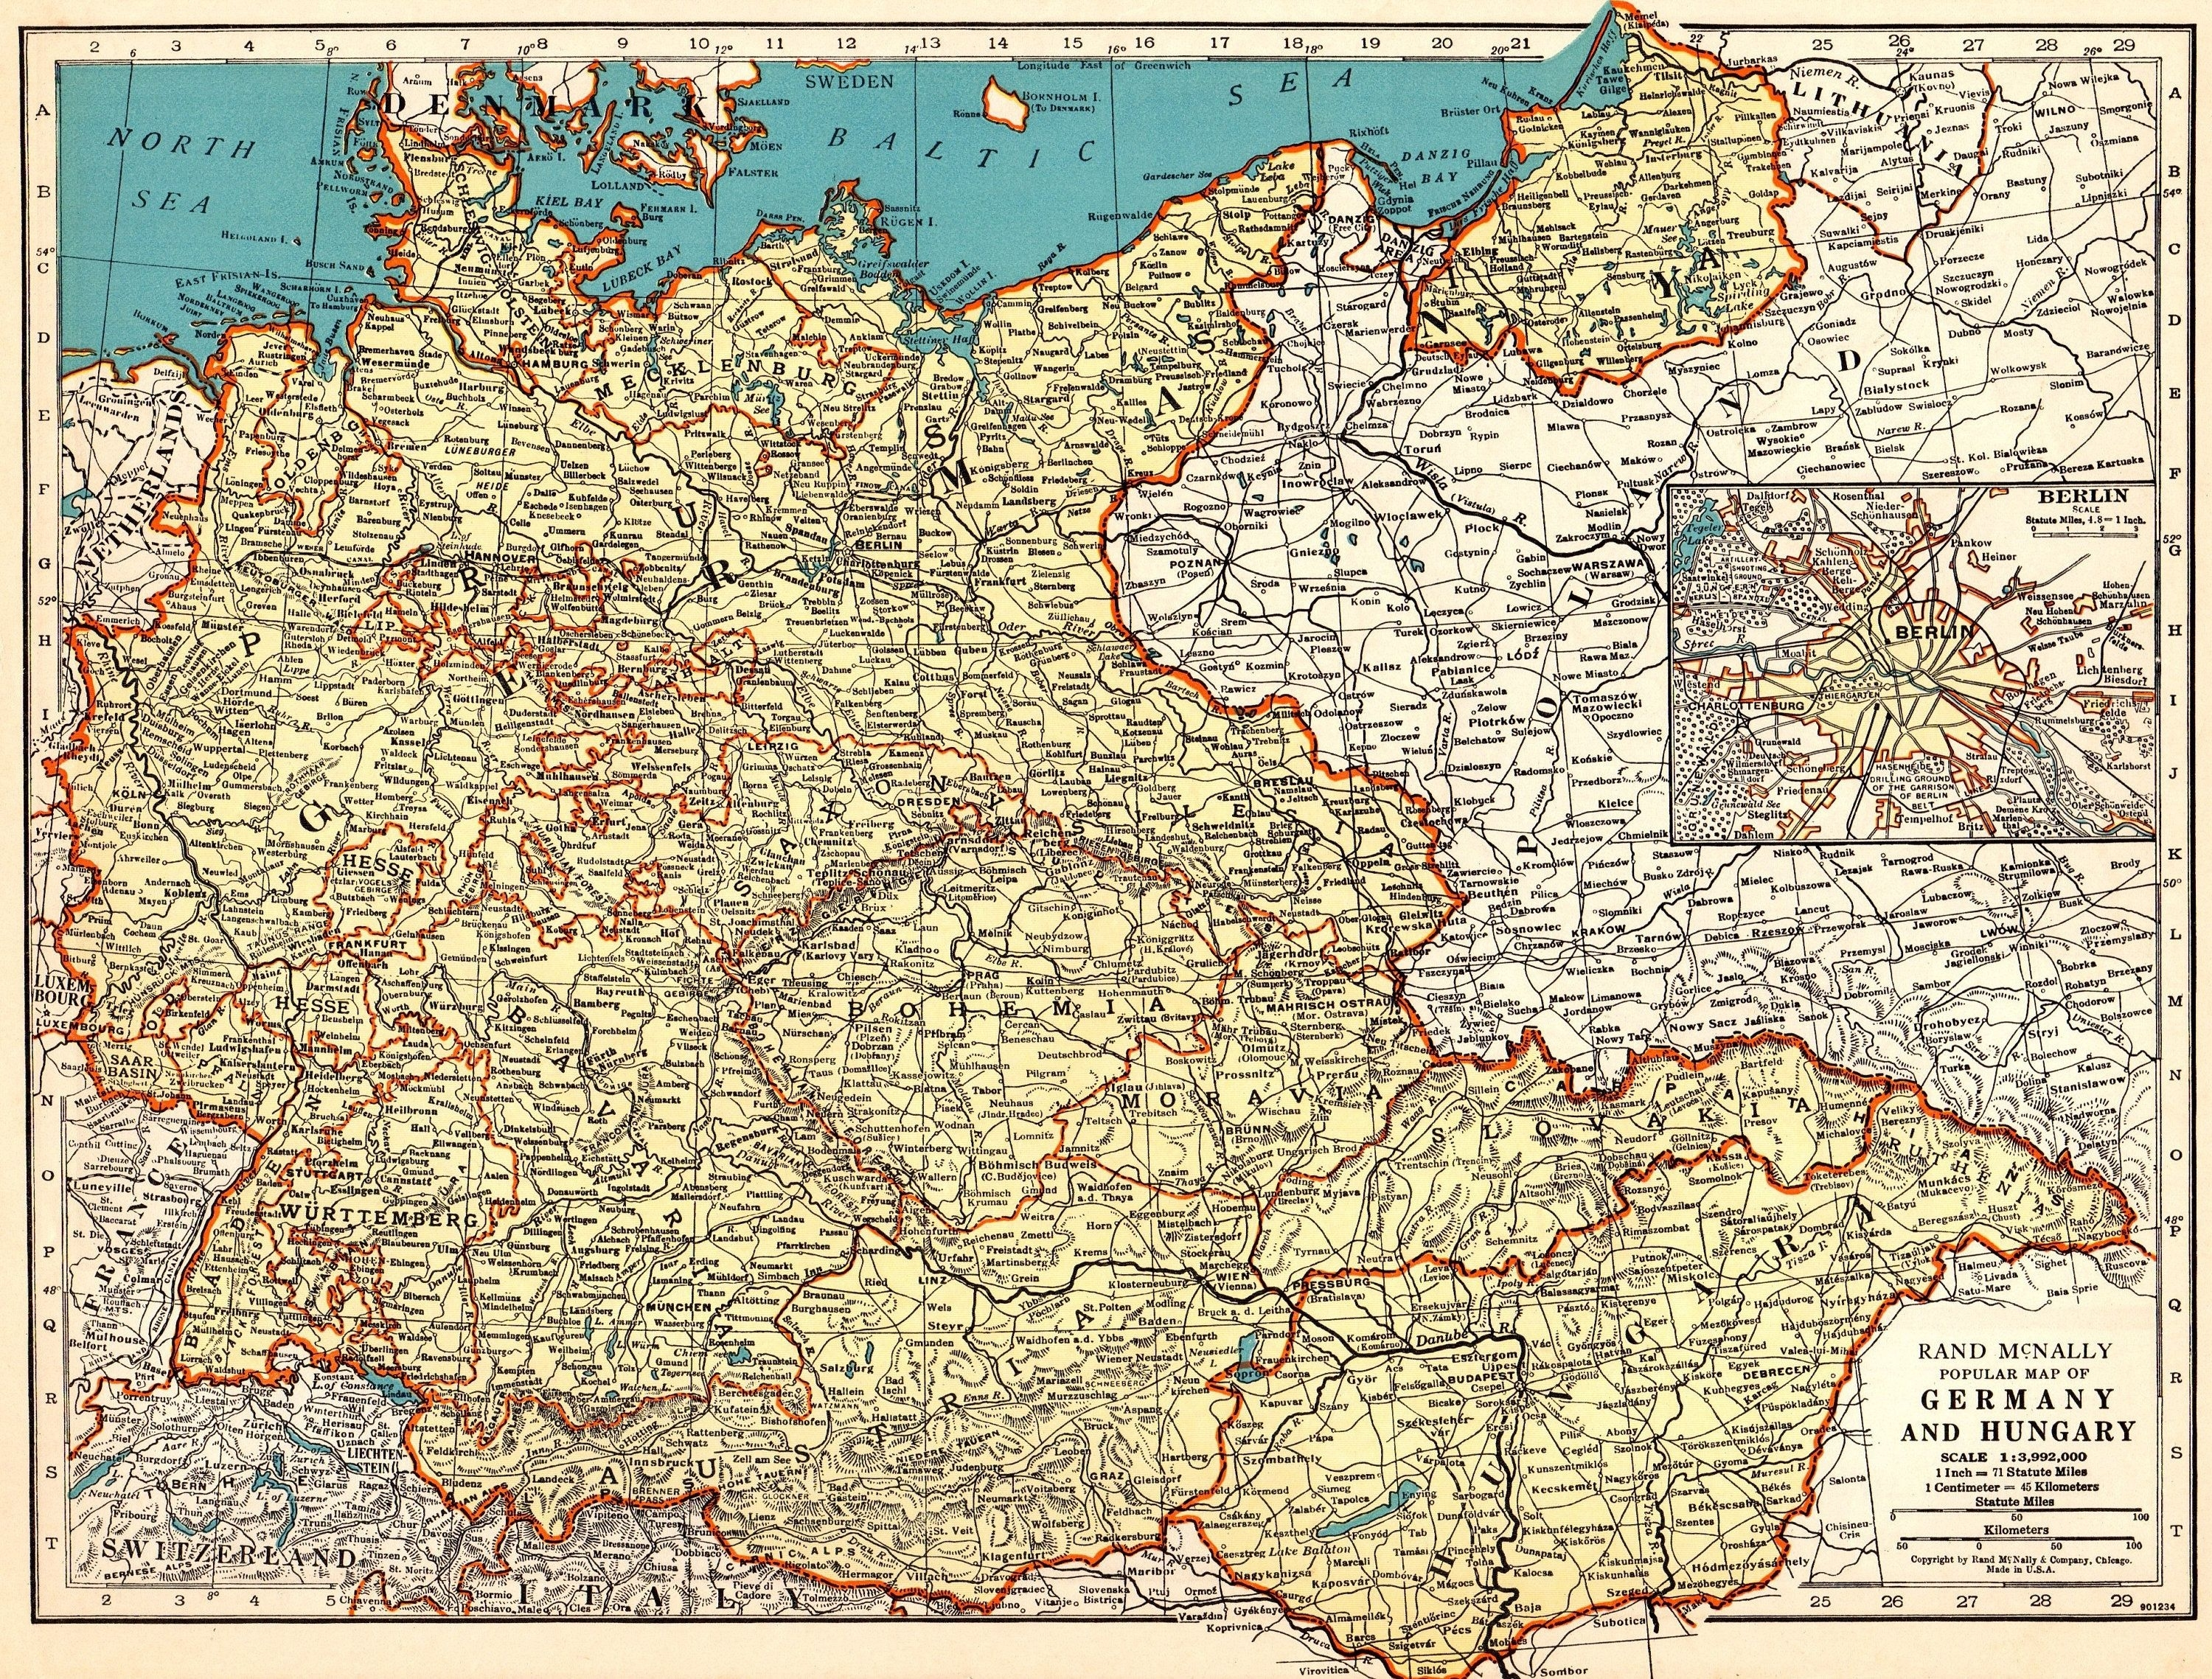 1939 Antique Germany Map Of Germany And Hungary Map Gallery Wall with regard to Germany Map 1939